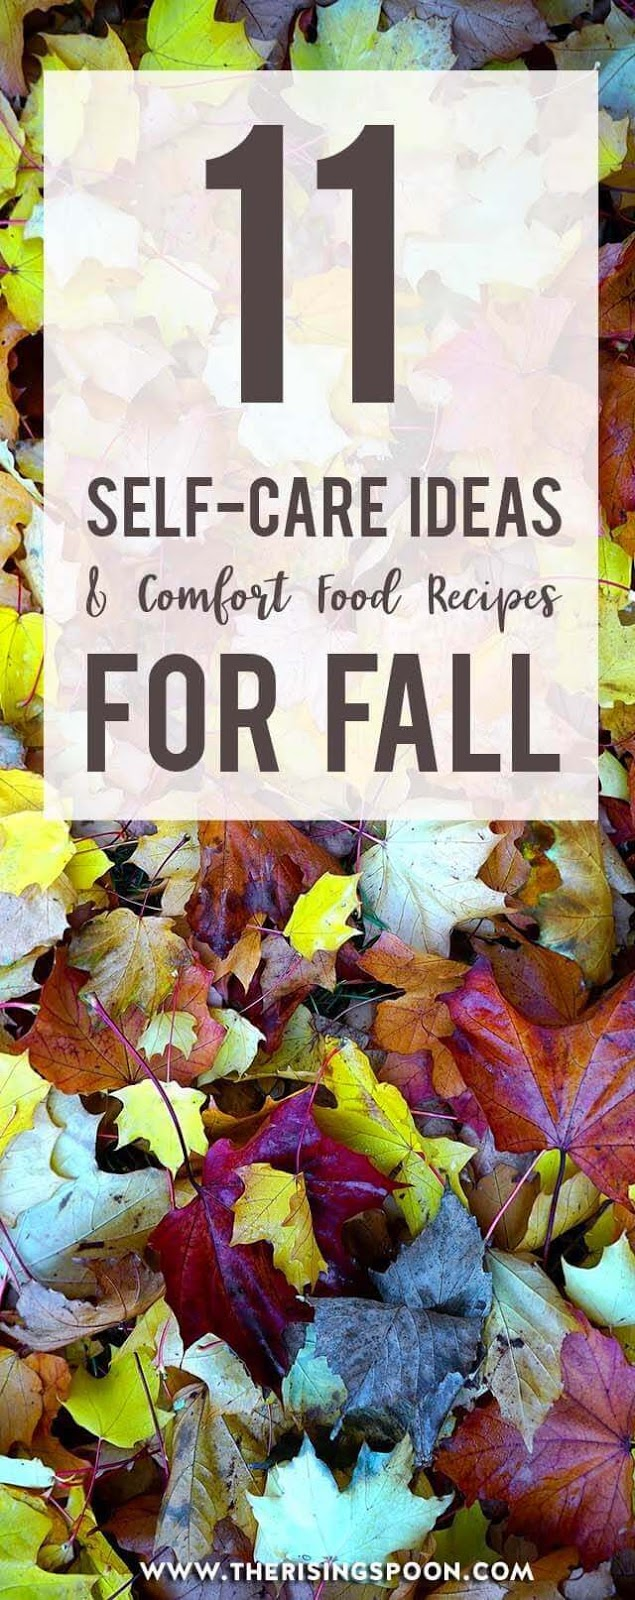 Want to slow down and truly enjoy the fall season? Check out this inspiring list of fall-themed self-care ideas and comfort food recipes from some of my favorite blogger friends. Add a few to your weekly routine & you'll be feeling relaxed, present, and nourished in no time.